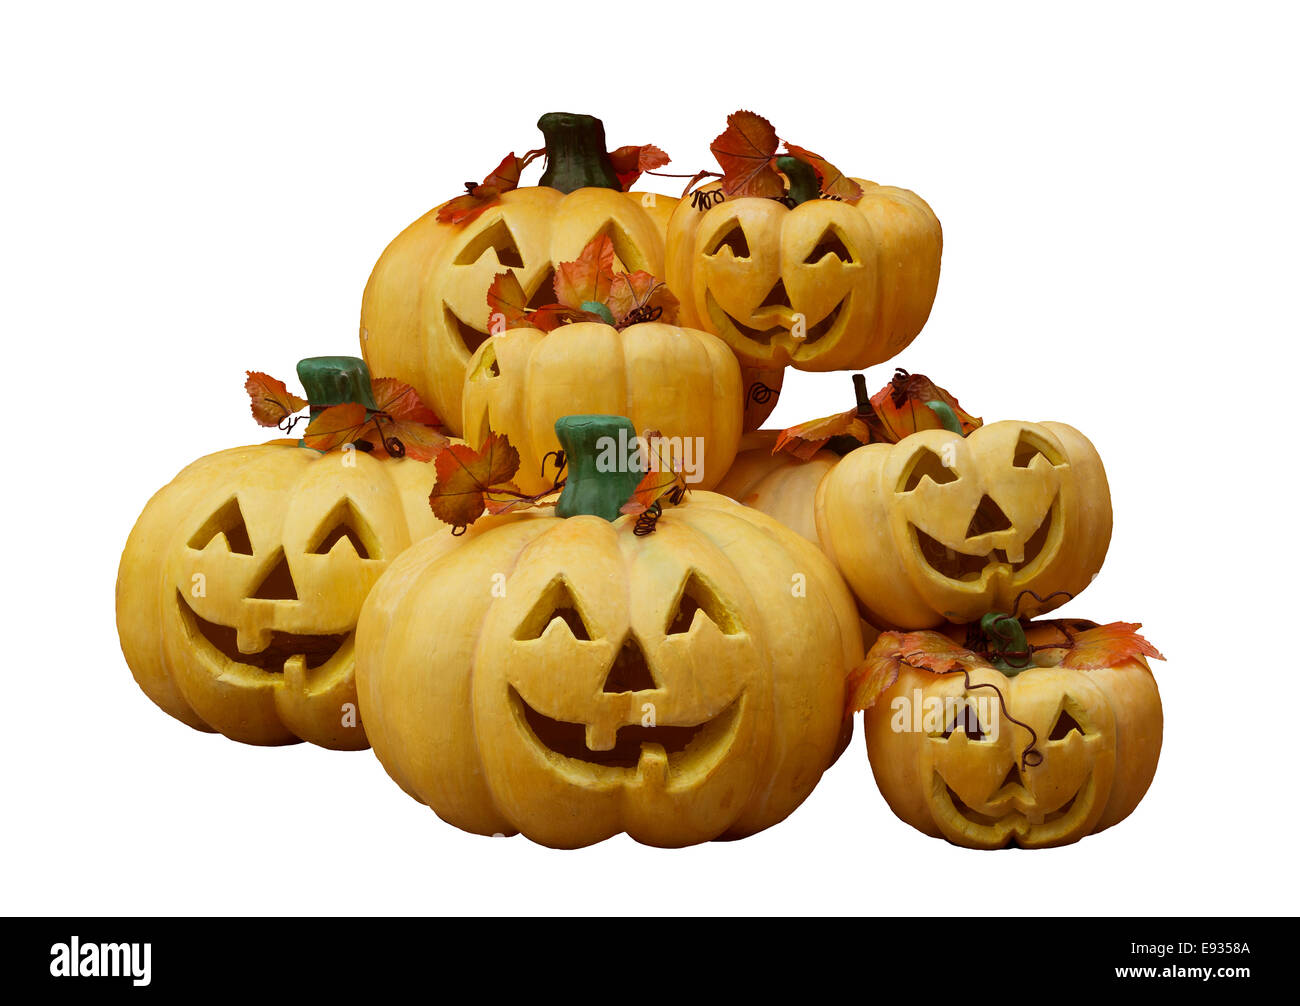 Pumpkin ghost mask for halloween festival.Isolate background and path. - Stock Image